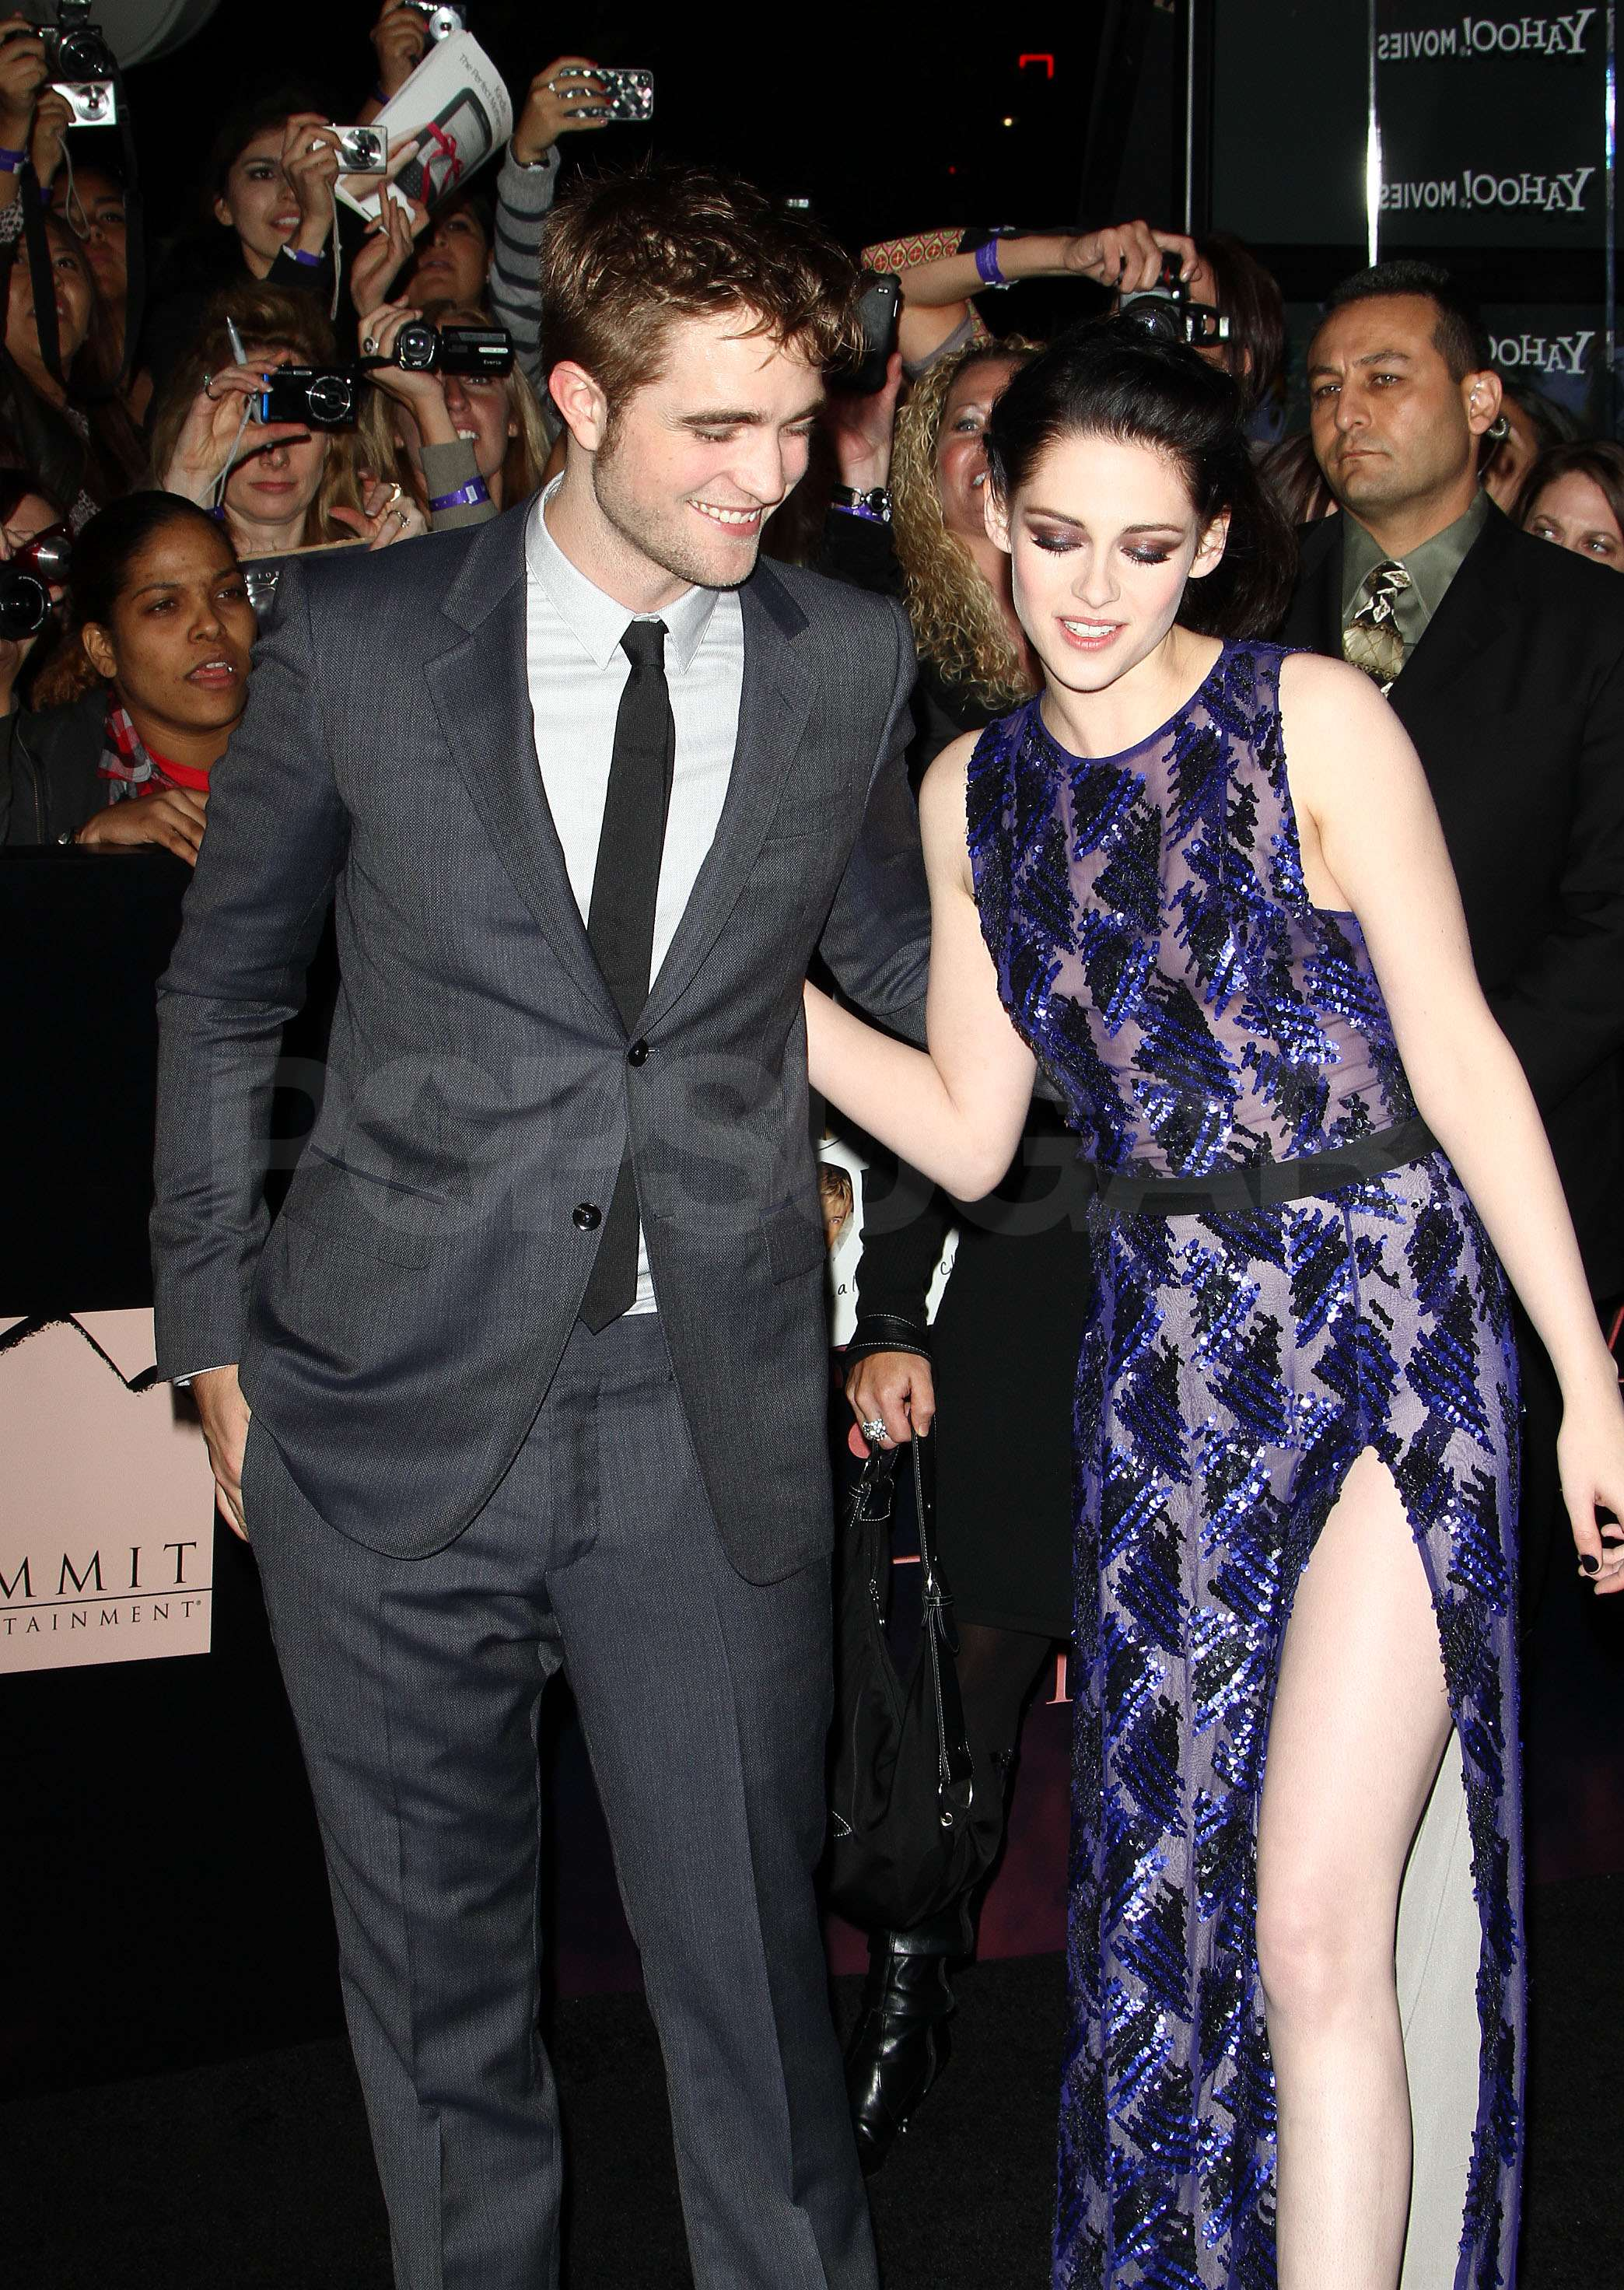 Kristen Stewart had Robert Pattinson for support as she posed in heels at the Breaking Dawn premiere.